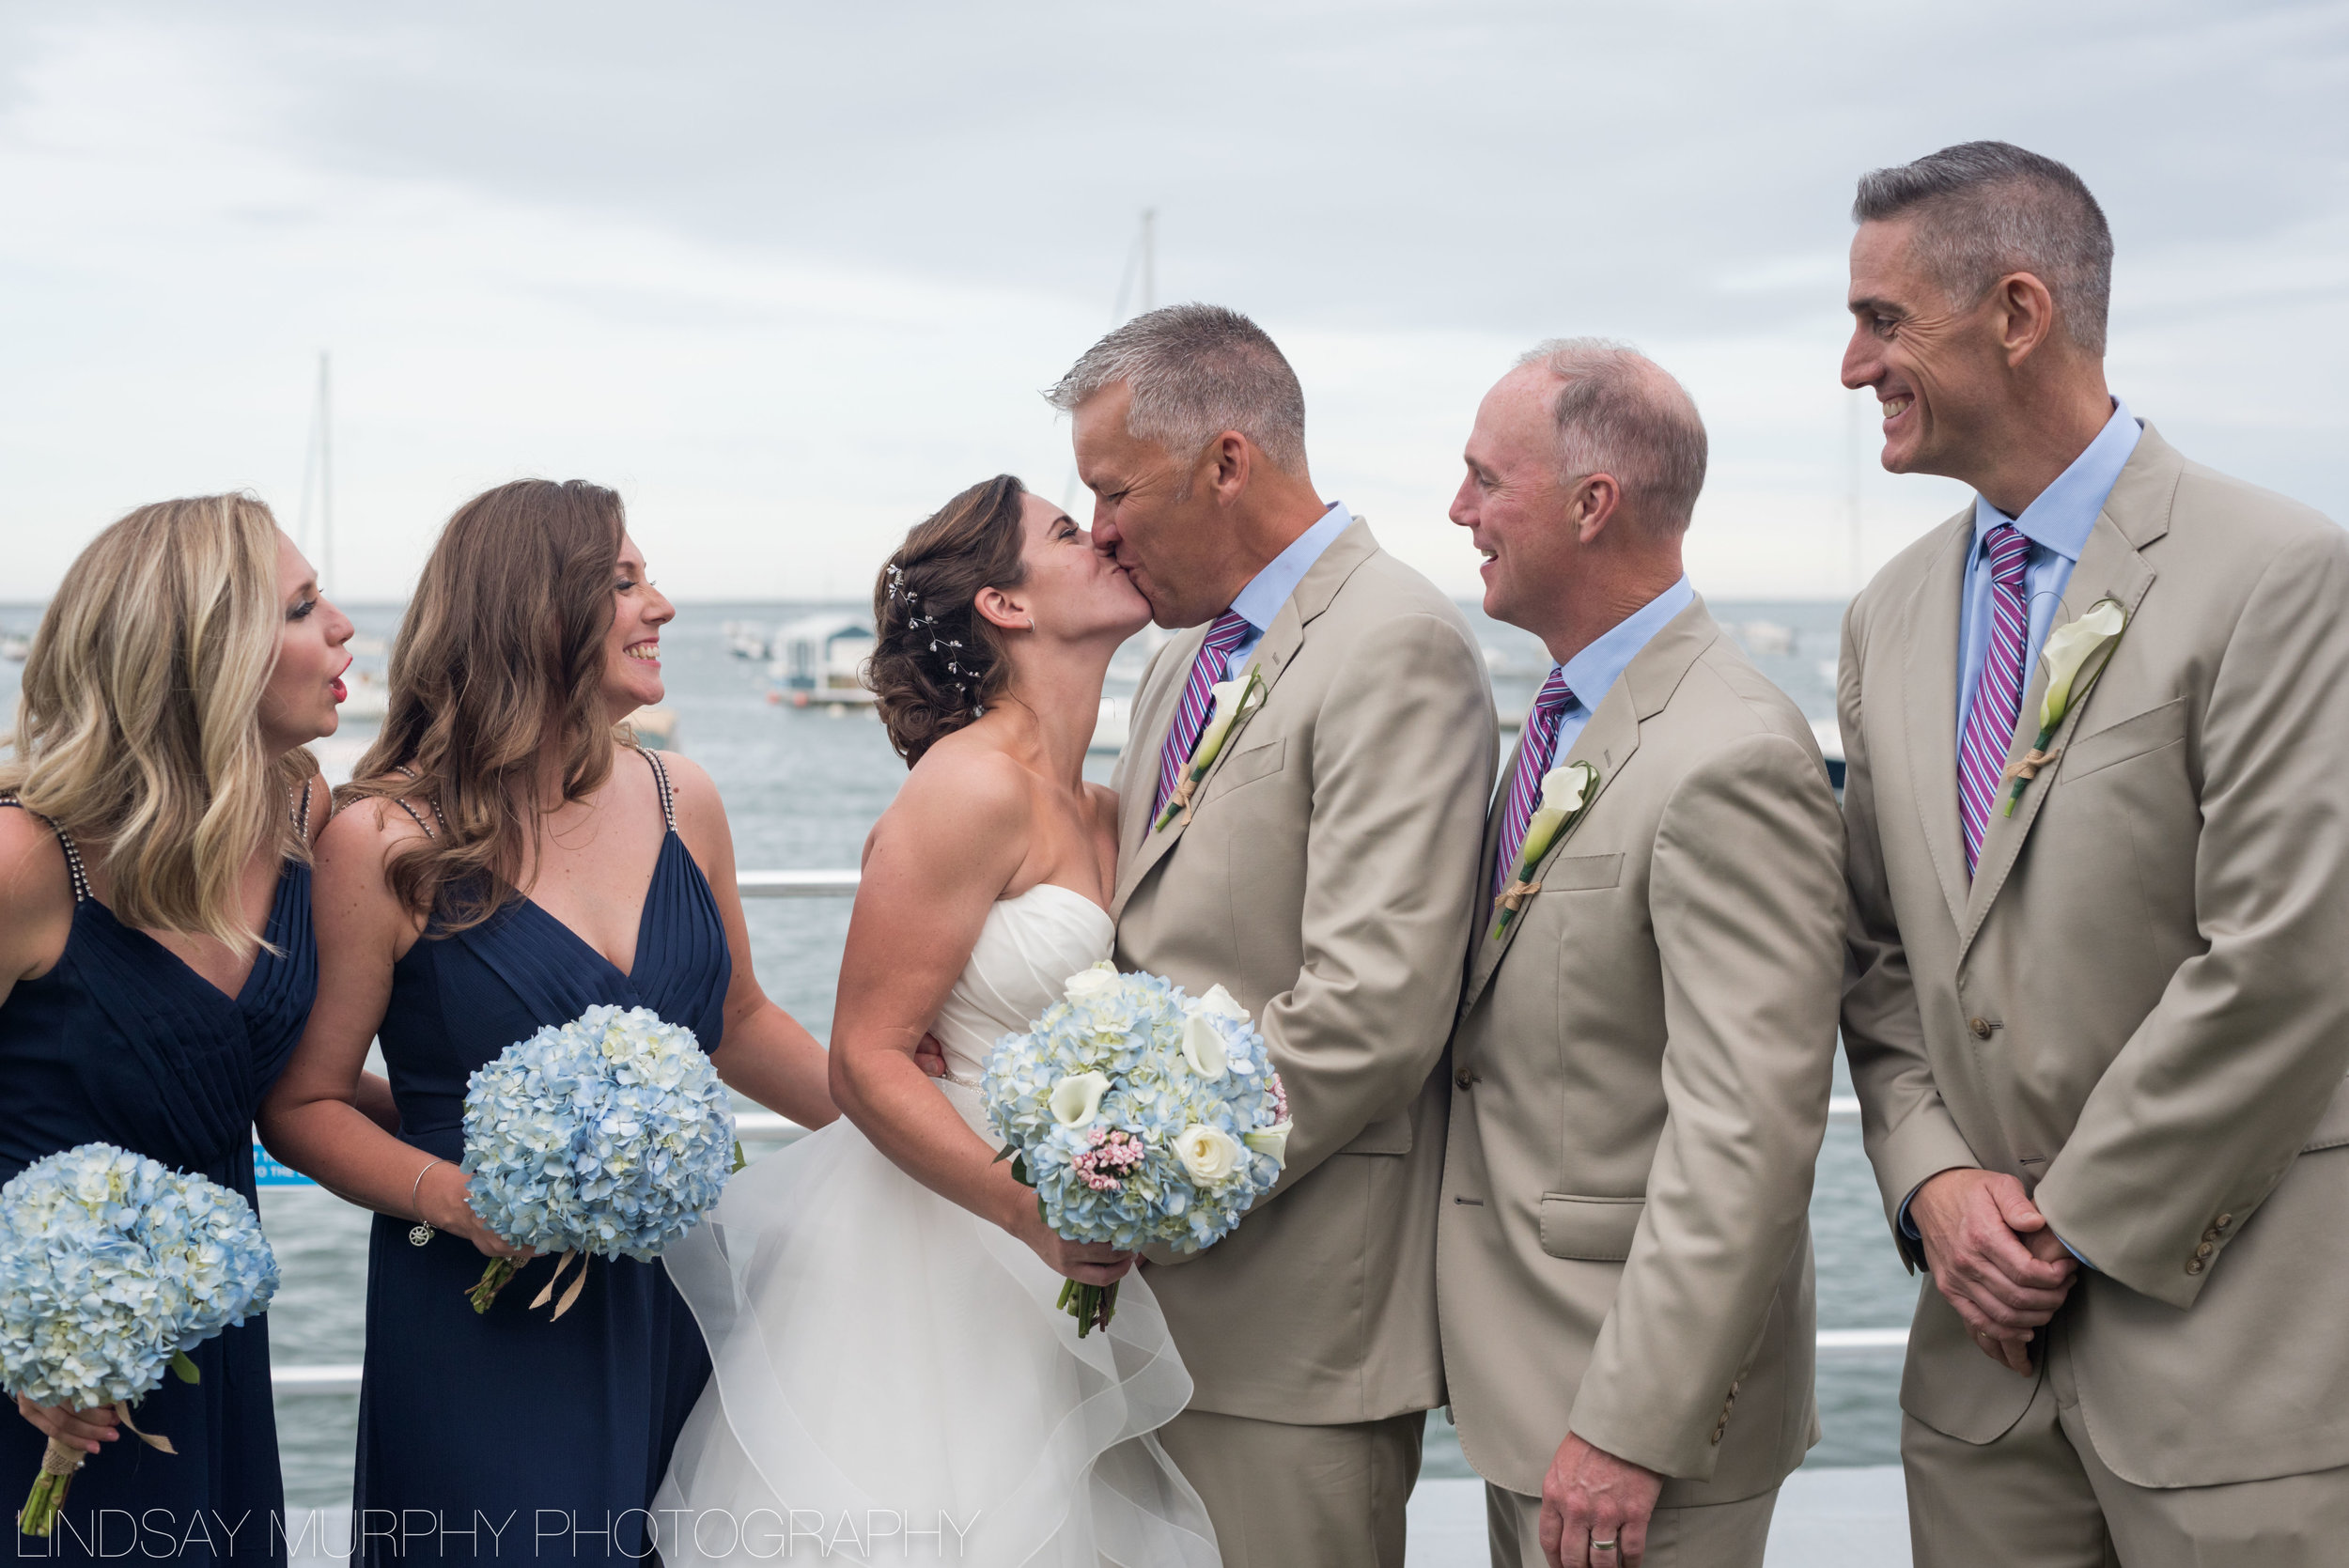 Duxbury_Wedding_Photographer-302.jpg